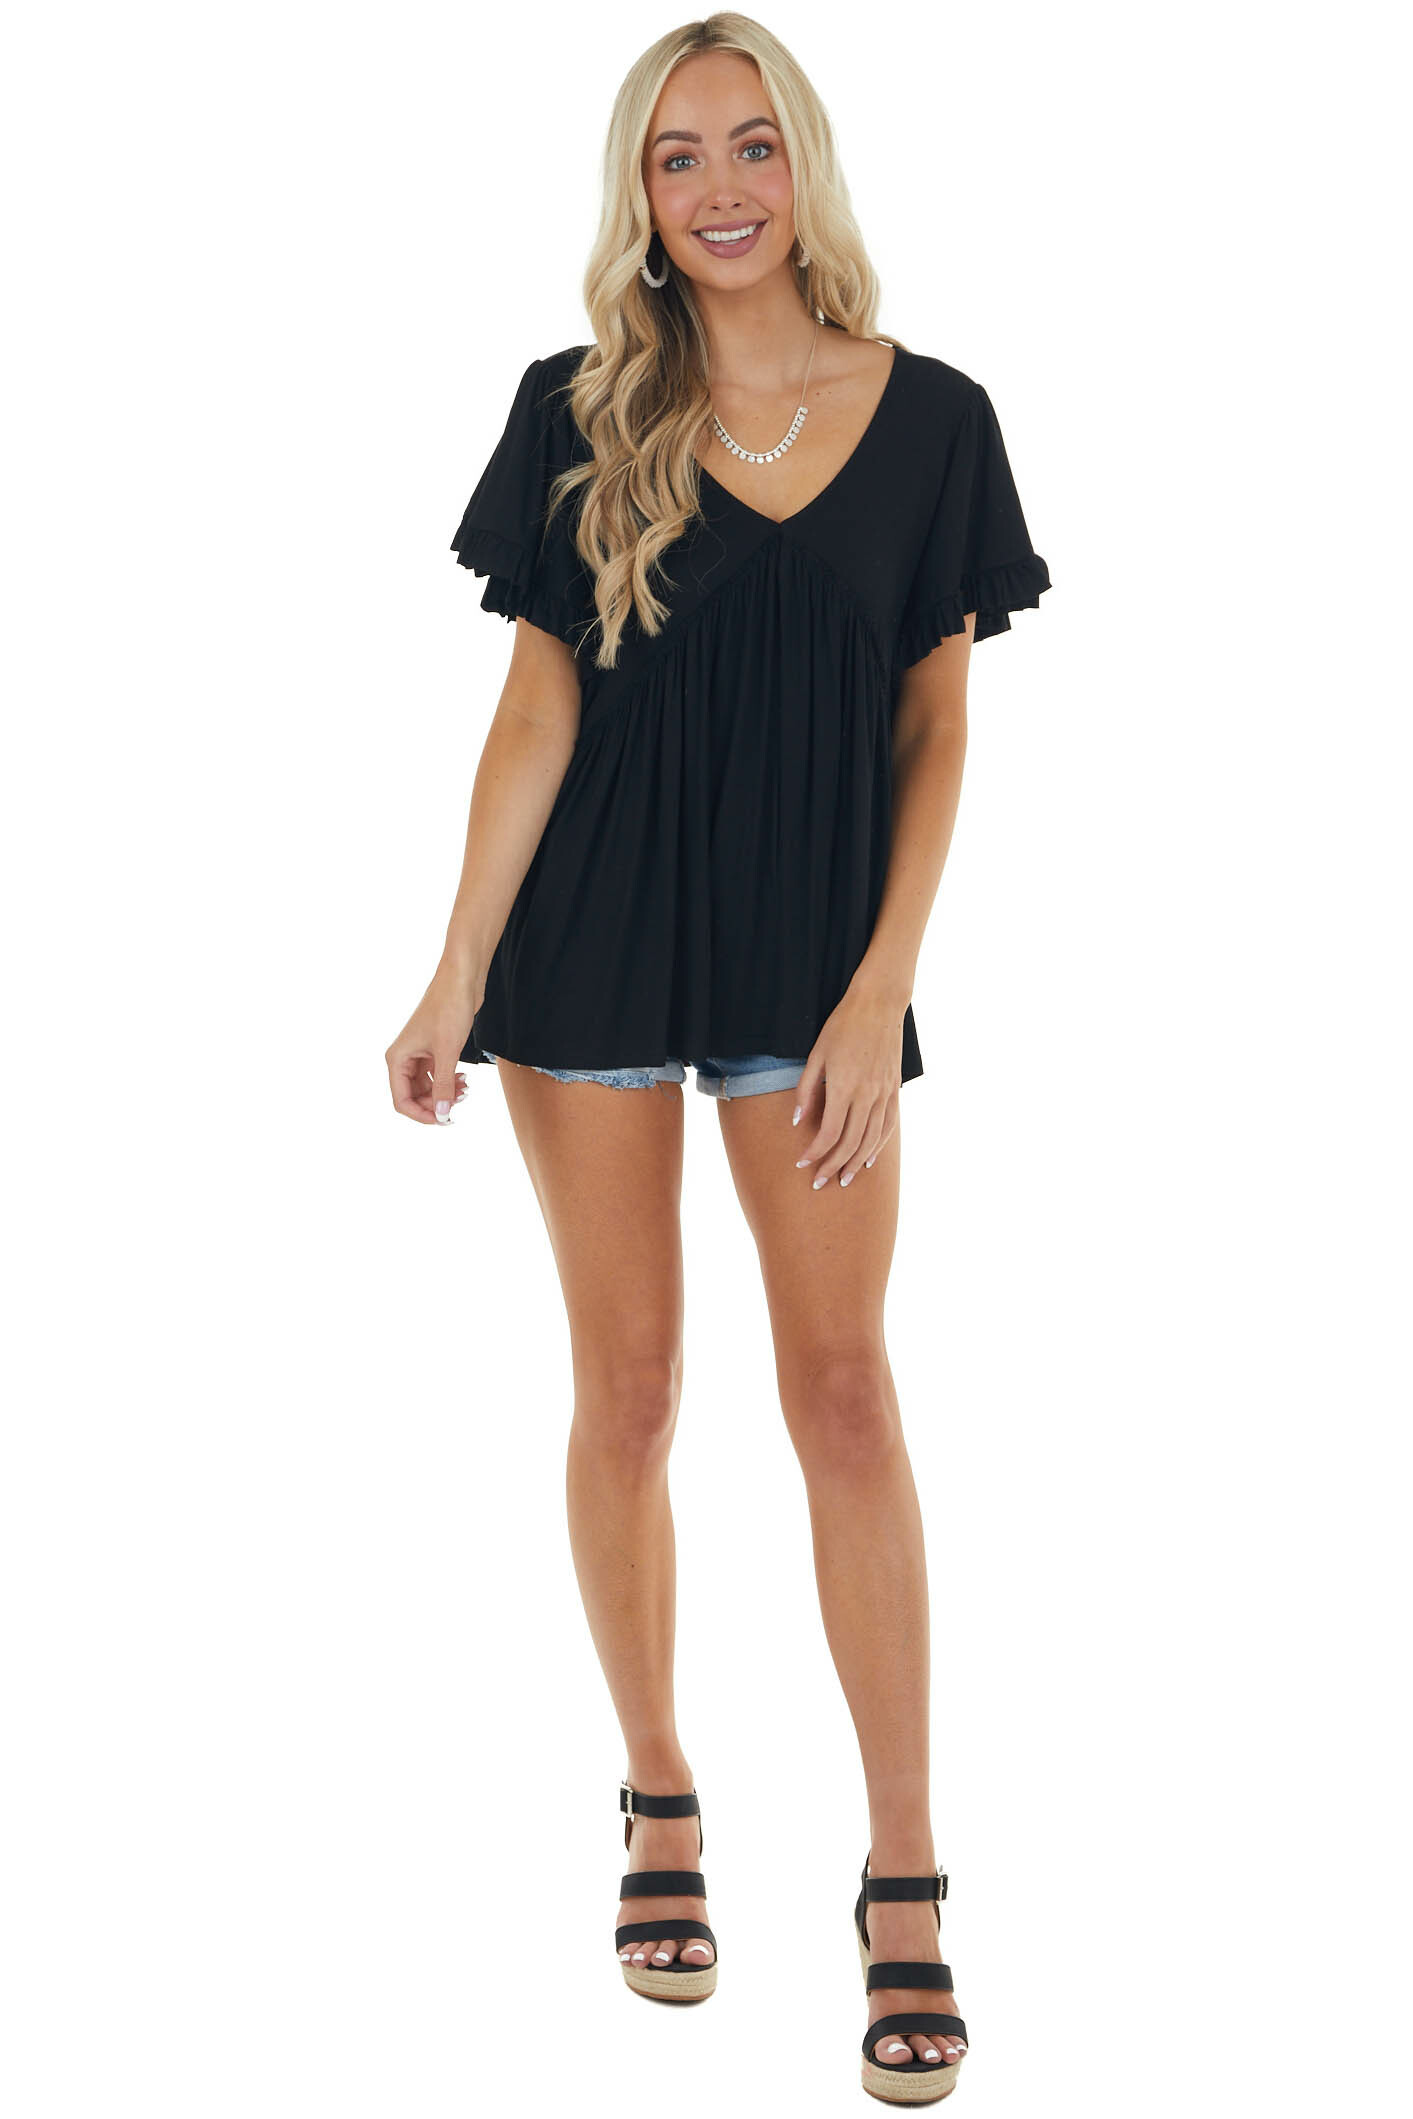 Black Soft Jersey Knit Top with Short Ruffle Sleeves